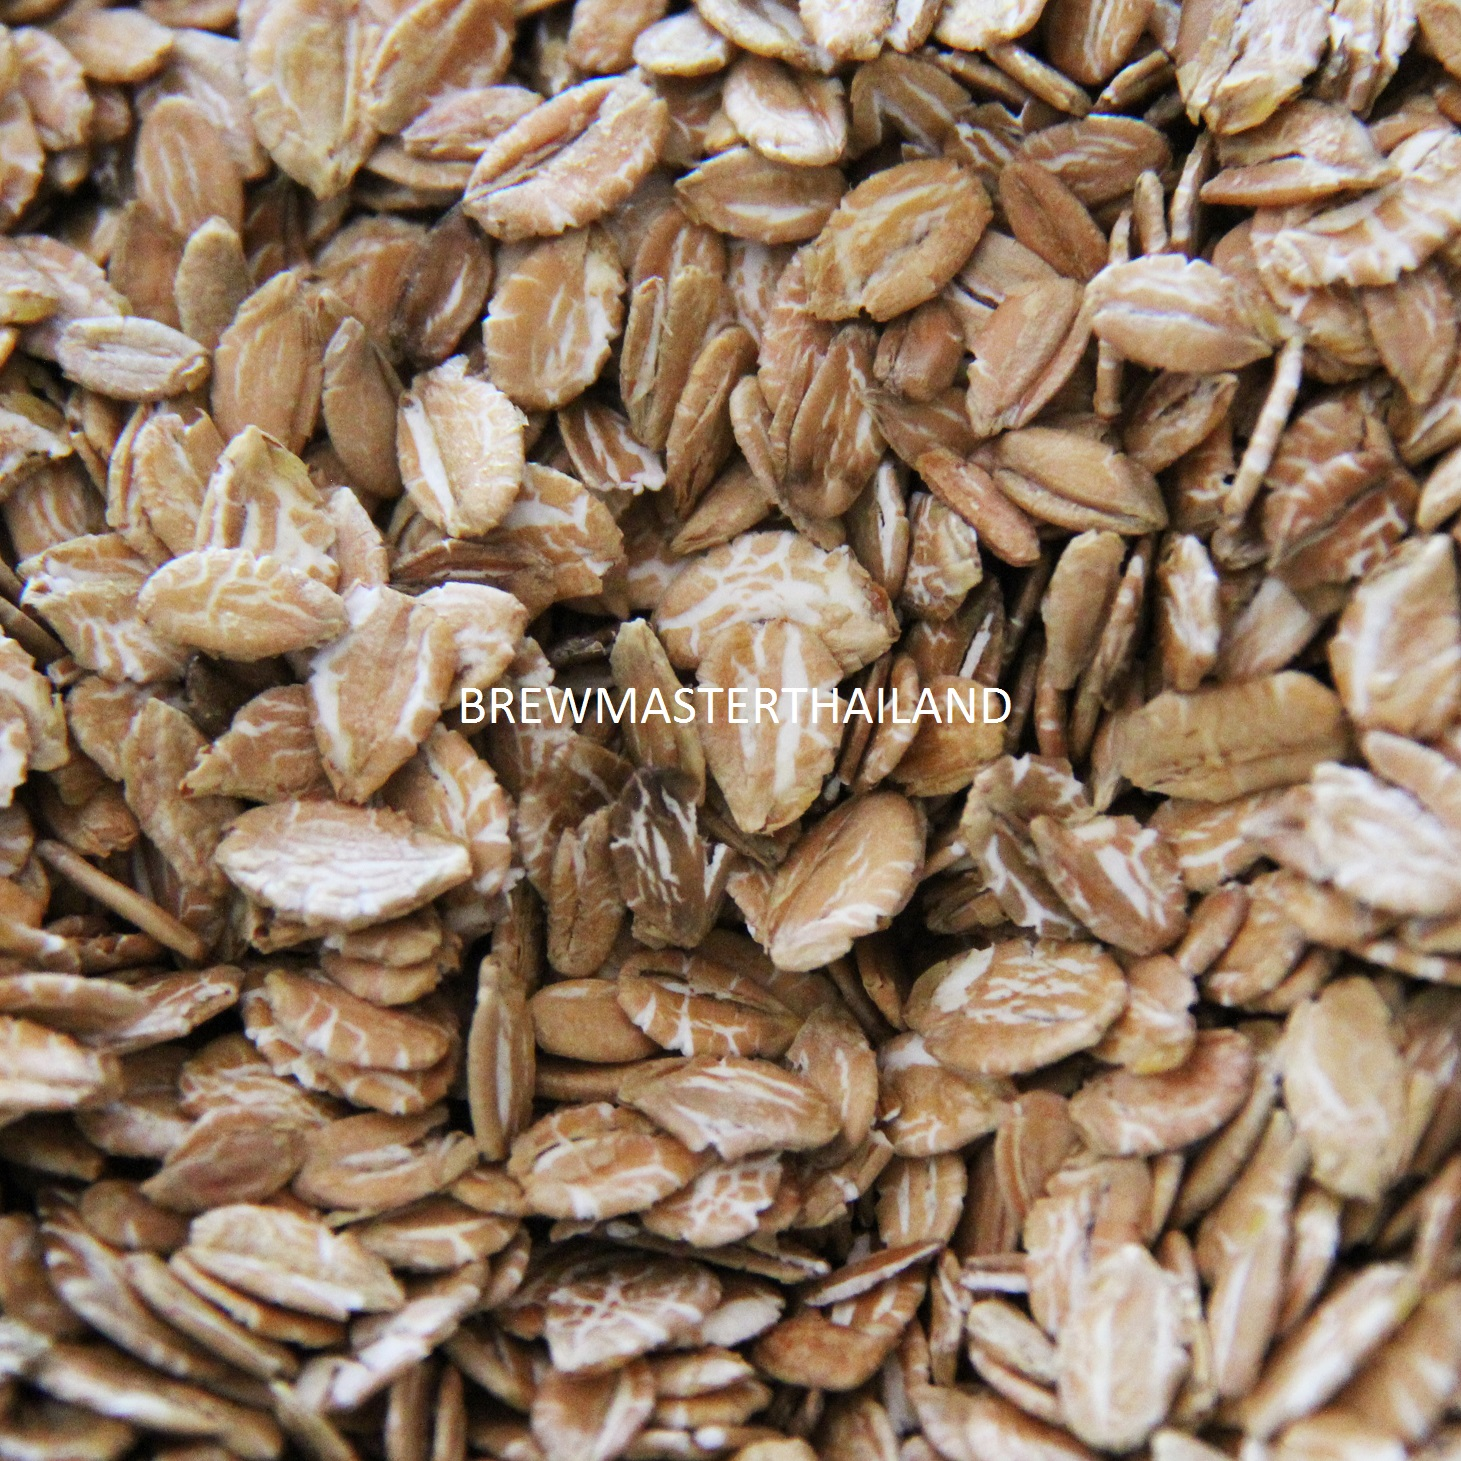 Flaked Rye (2lbs) - Product of Australia